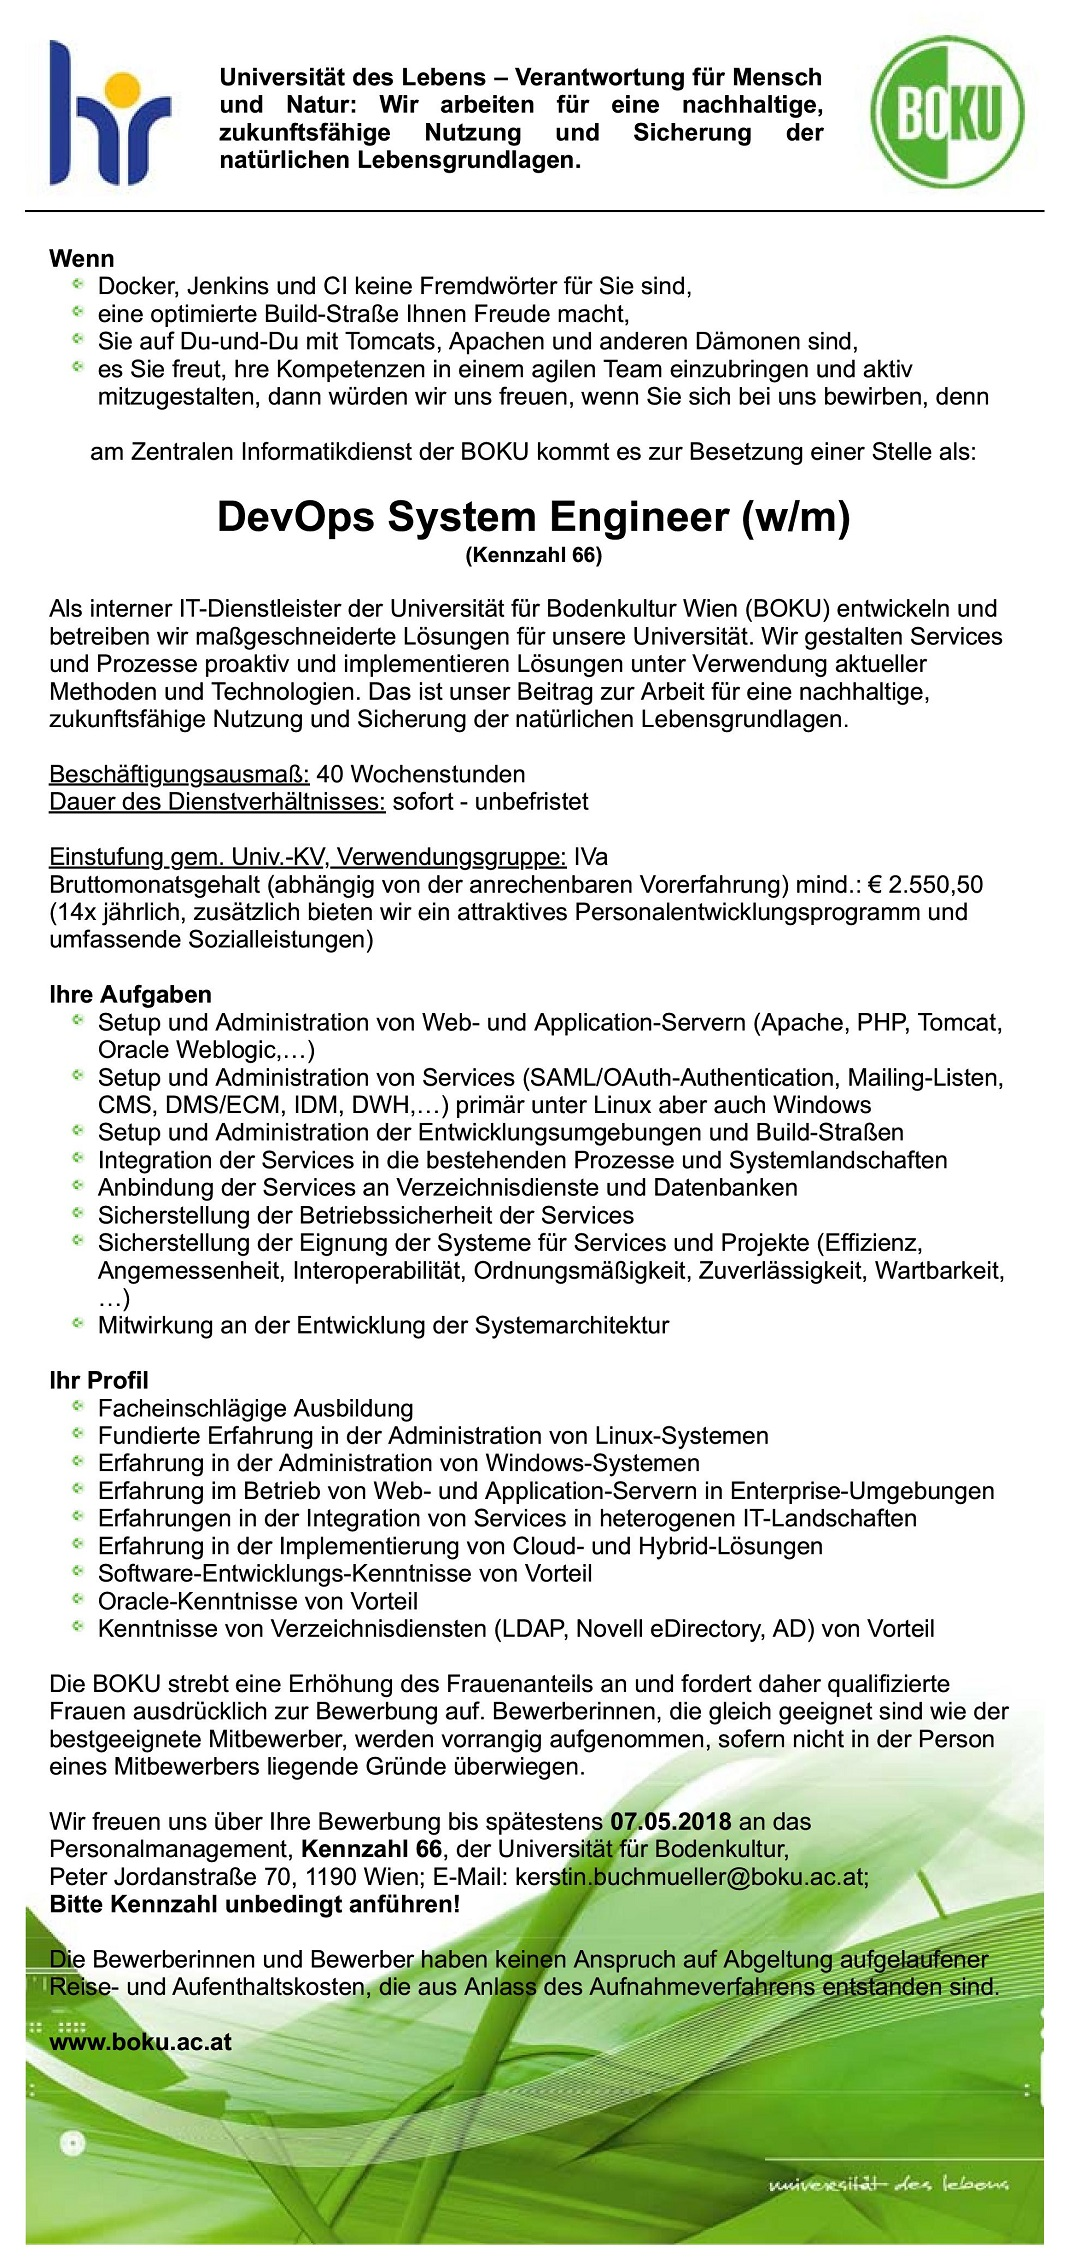 Groß Beispiel Lebenslauf Hrm Absolvent Fotos - Entry Level Resume ...